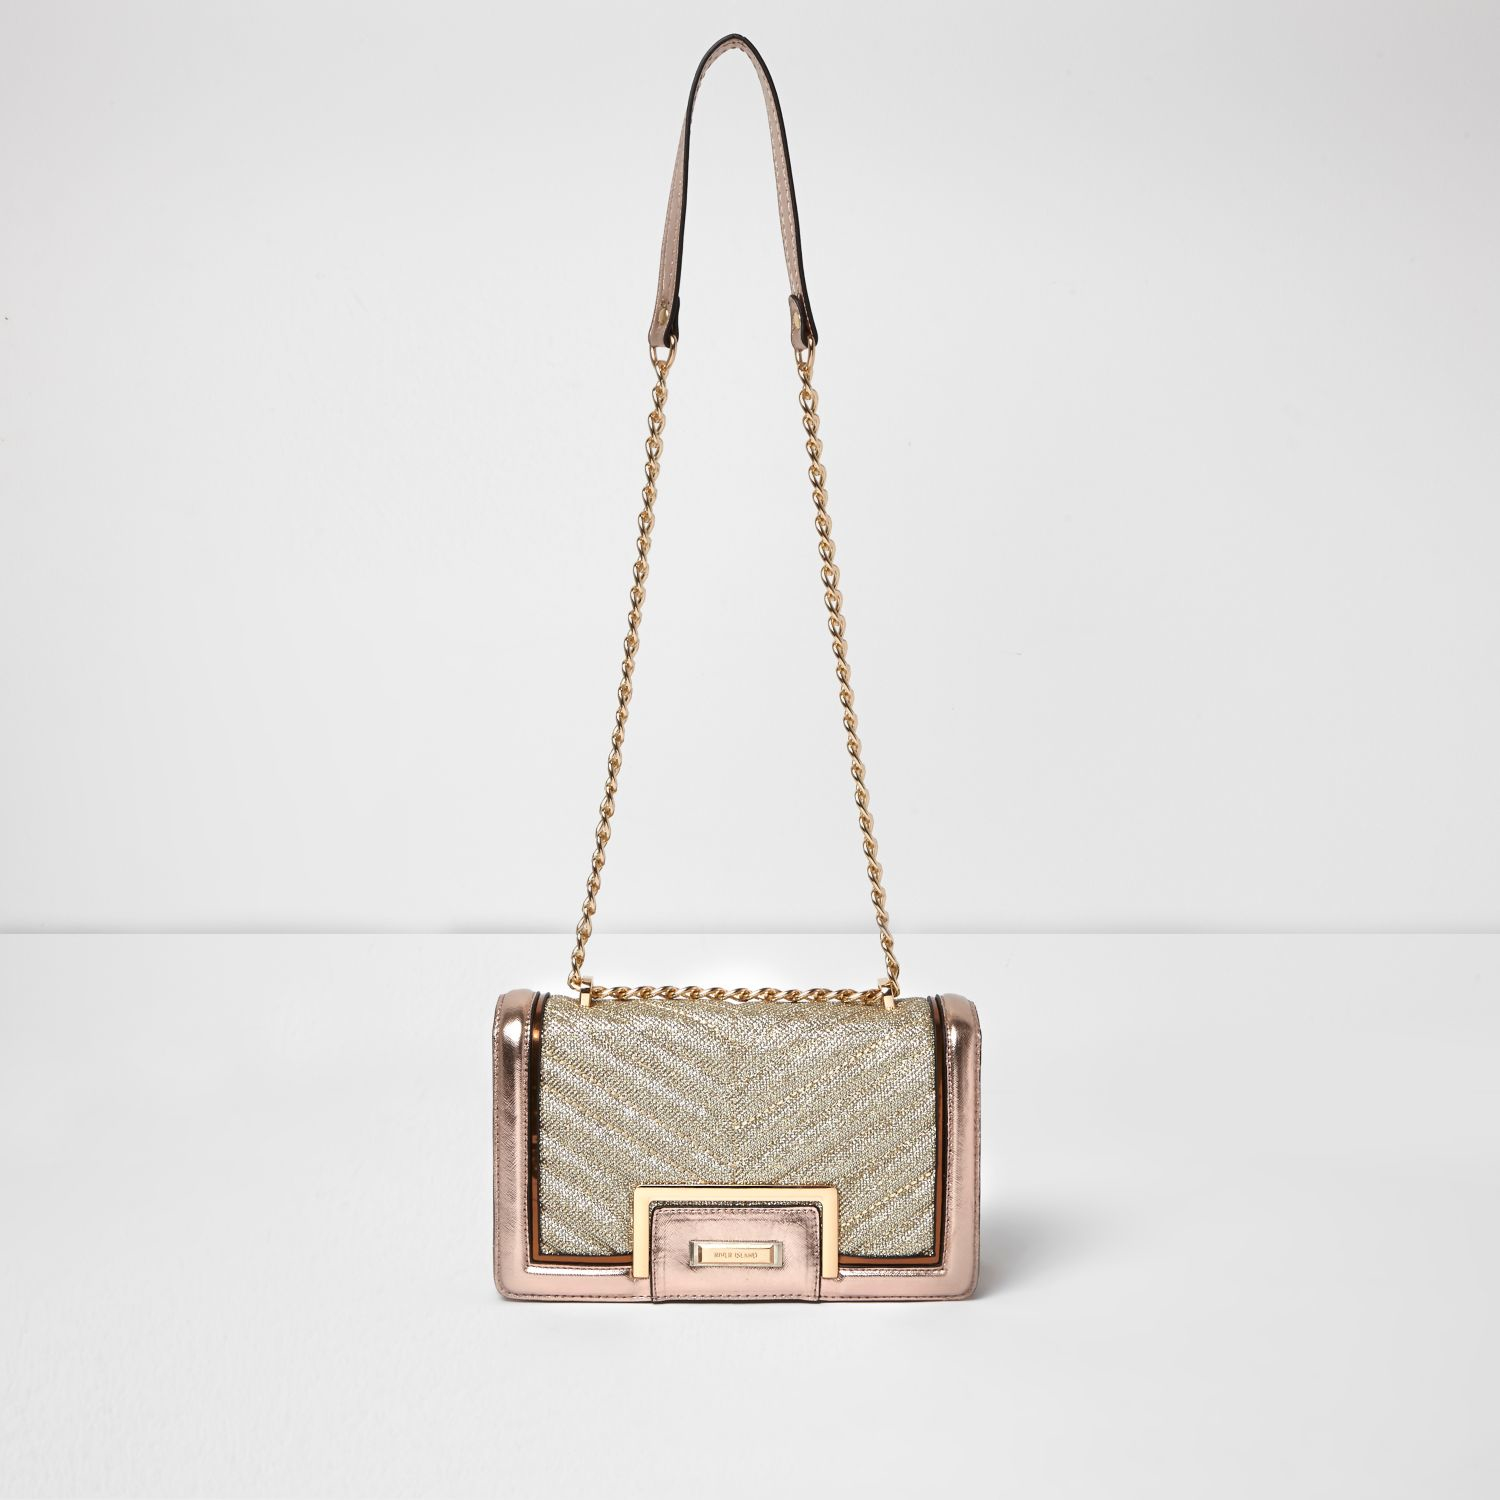 Lyst - River Island Rose Gold Quilted Panel Chain Shoulder Bag